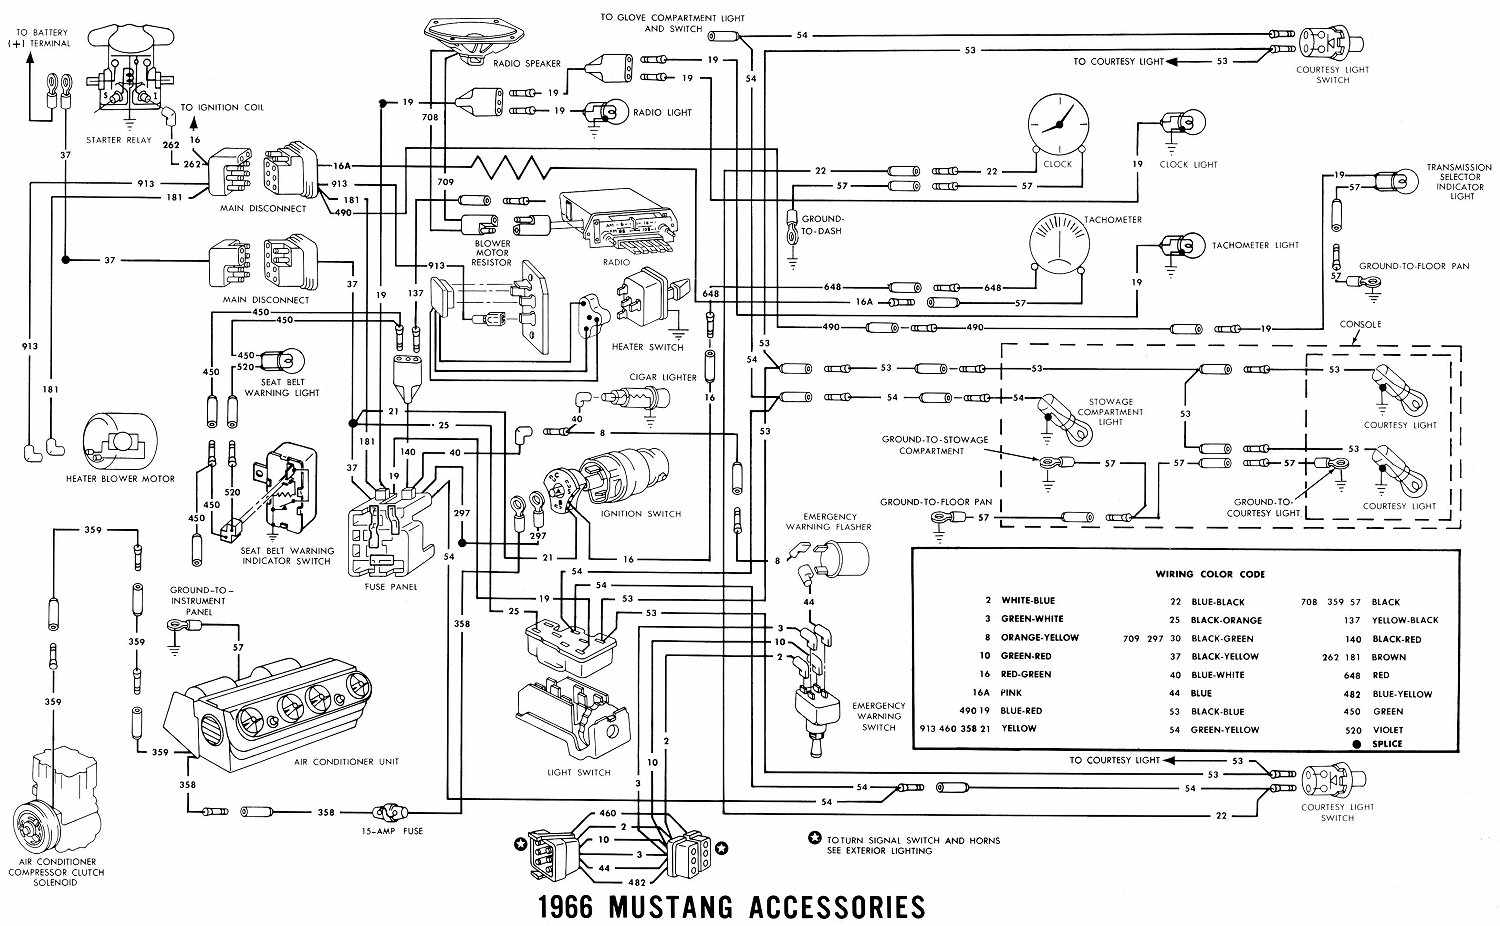 1966 ford mustang starter solenoid diagram electrical